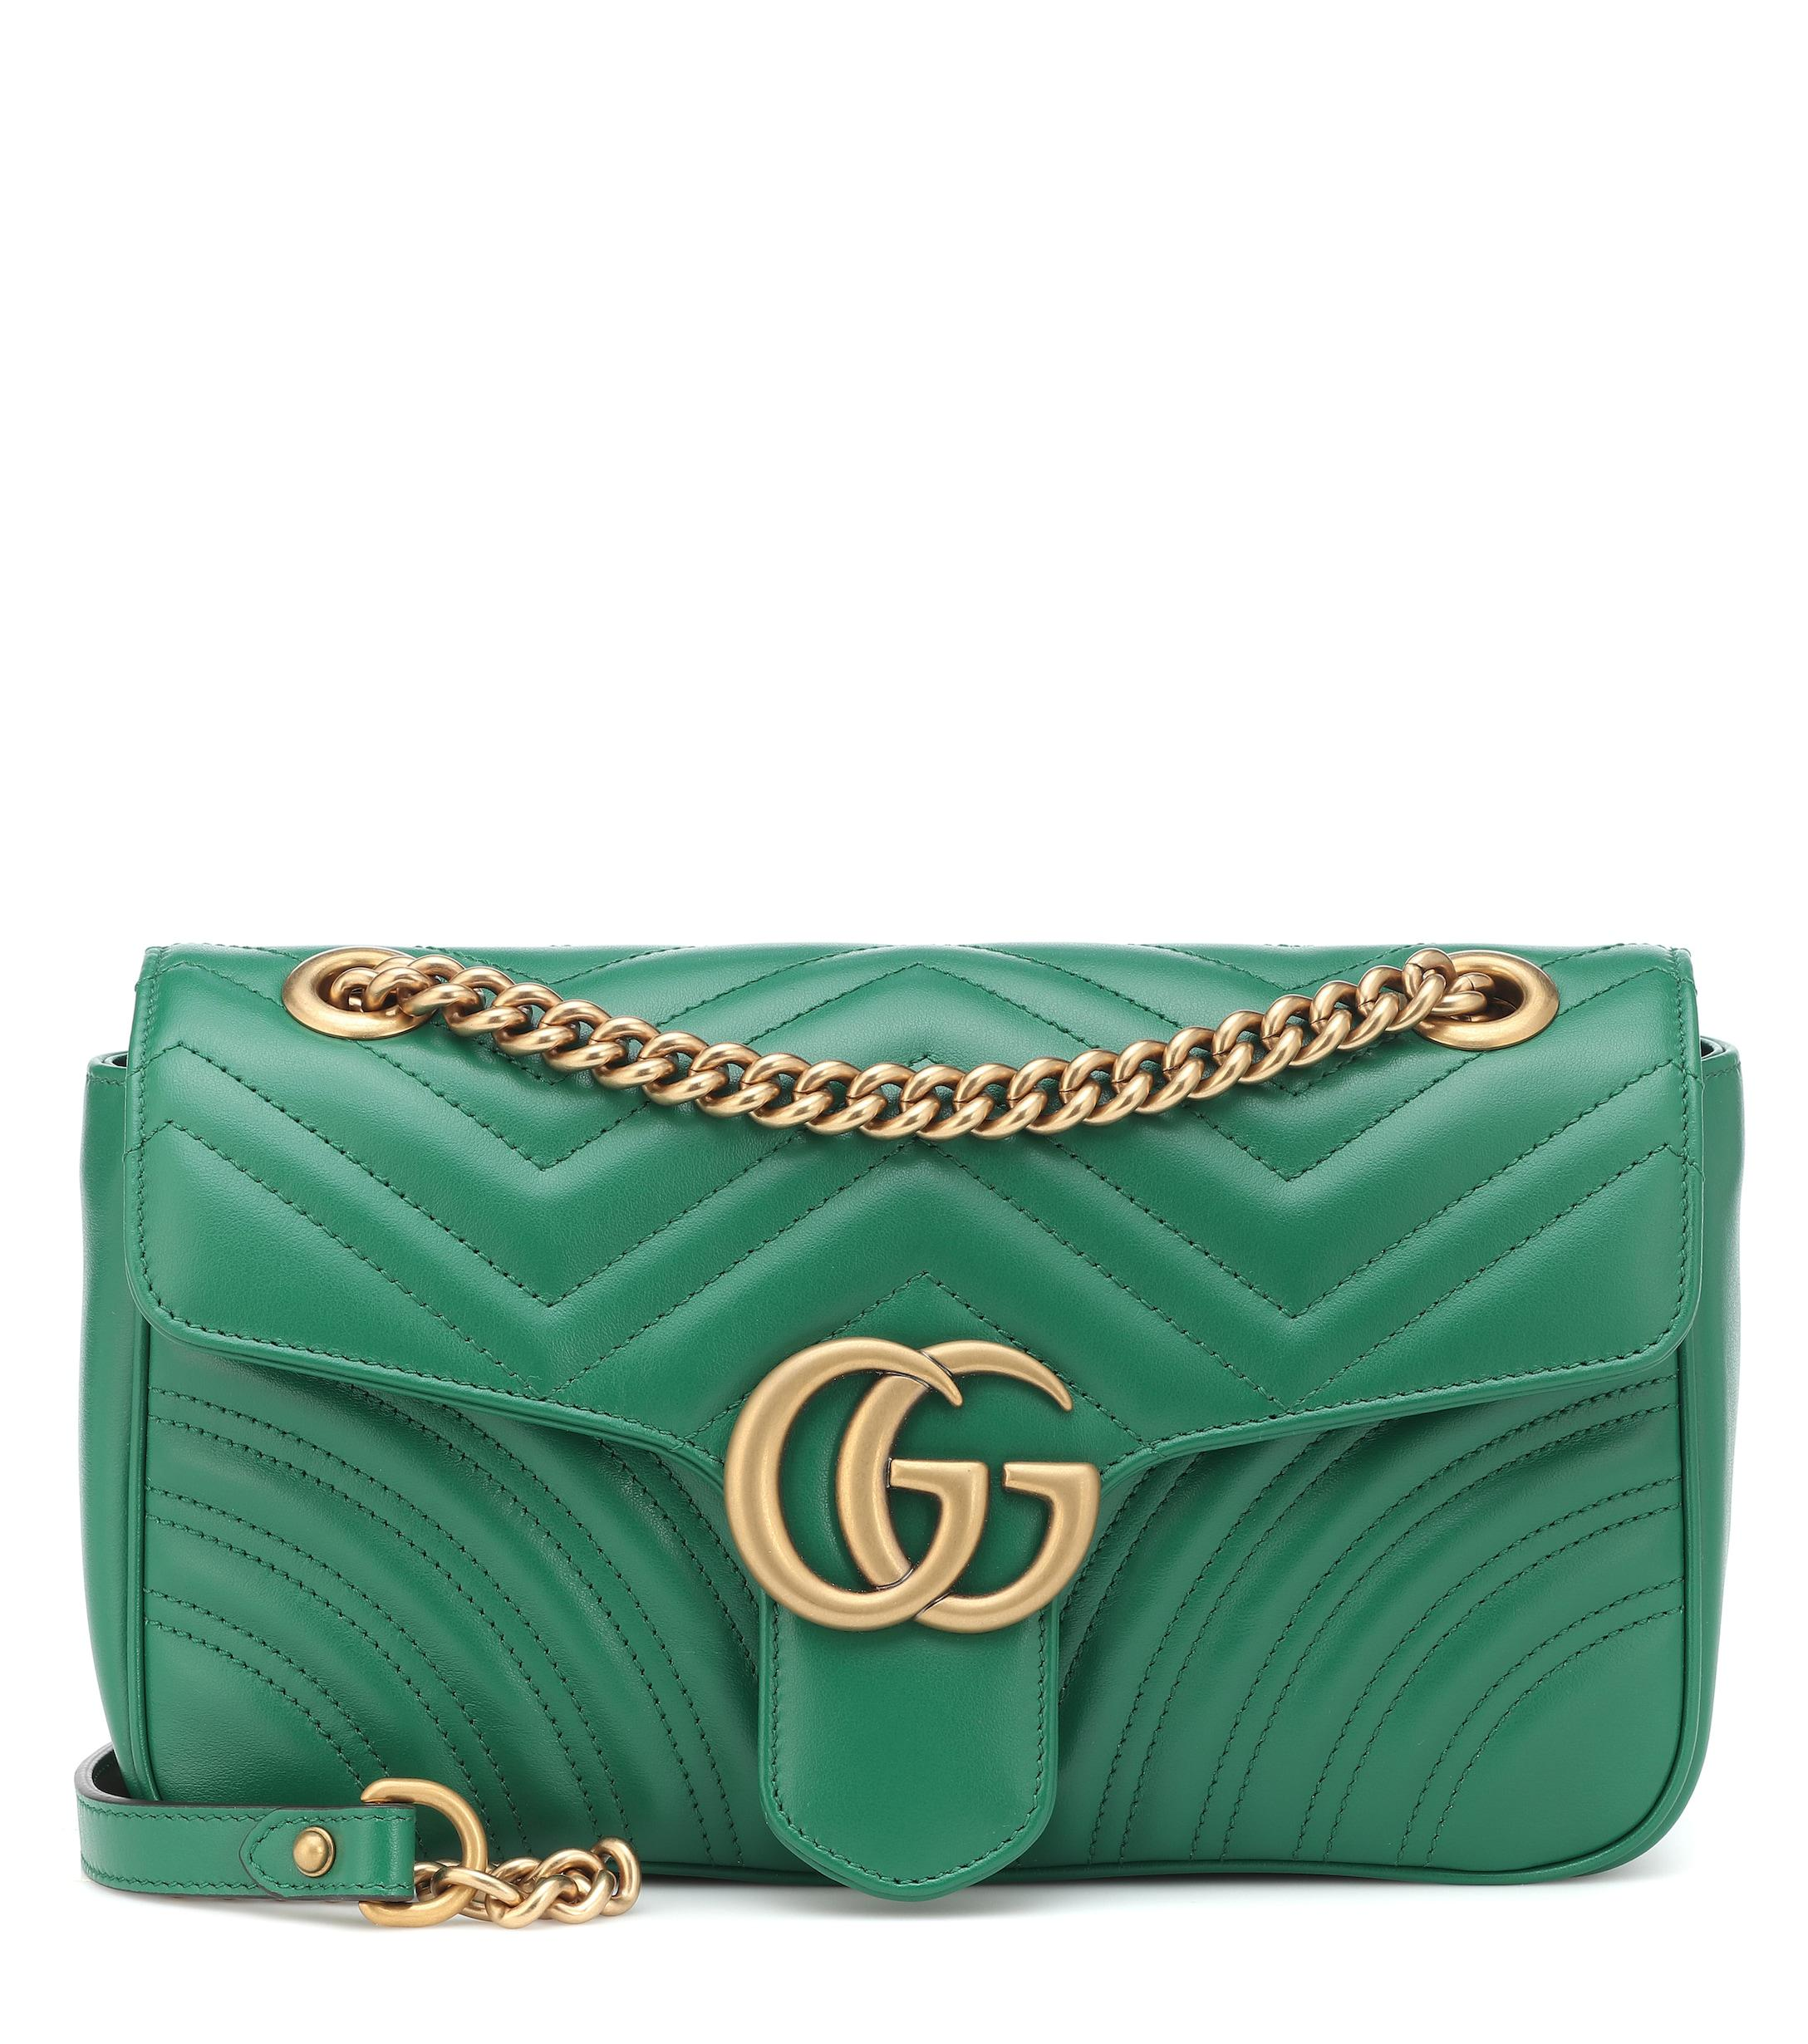 455bd4ee387012 Gucci GG Marmont Small Shoulder Bag in Green - Lyst